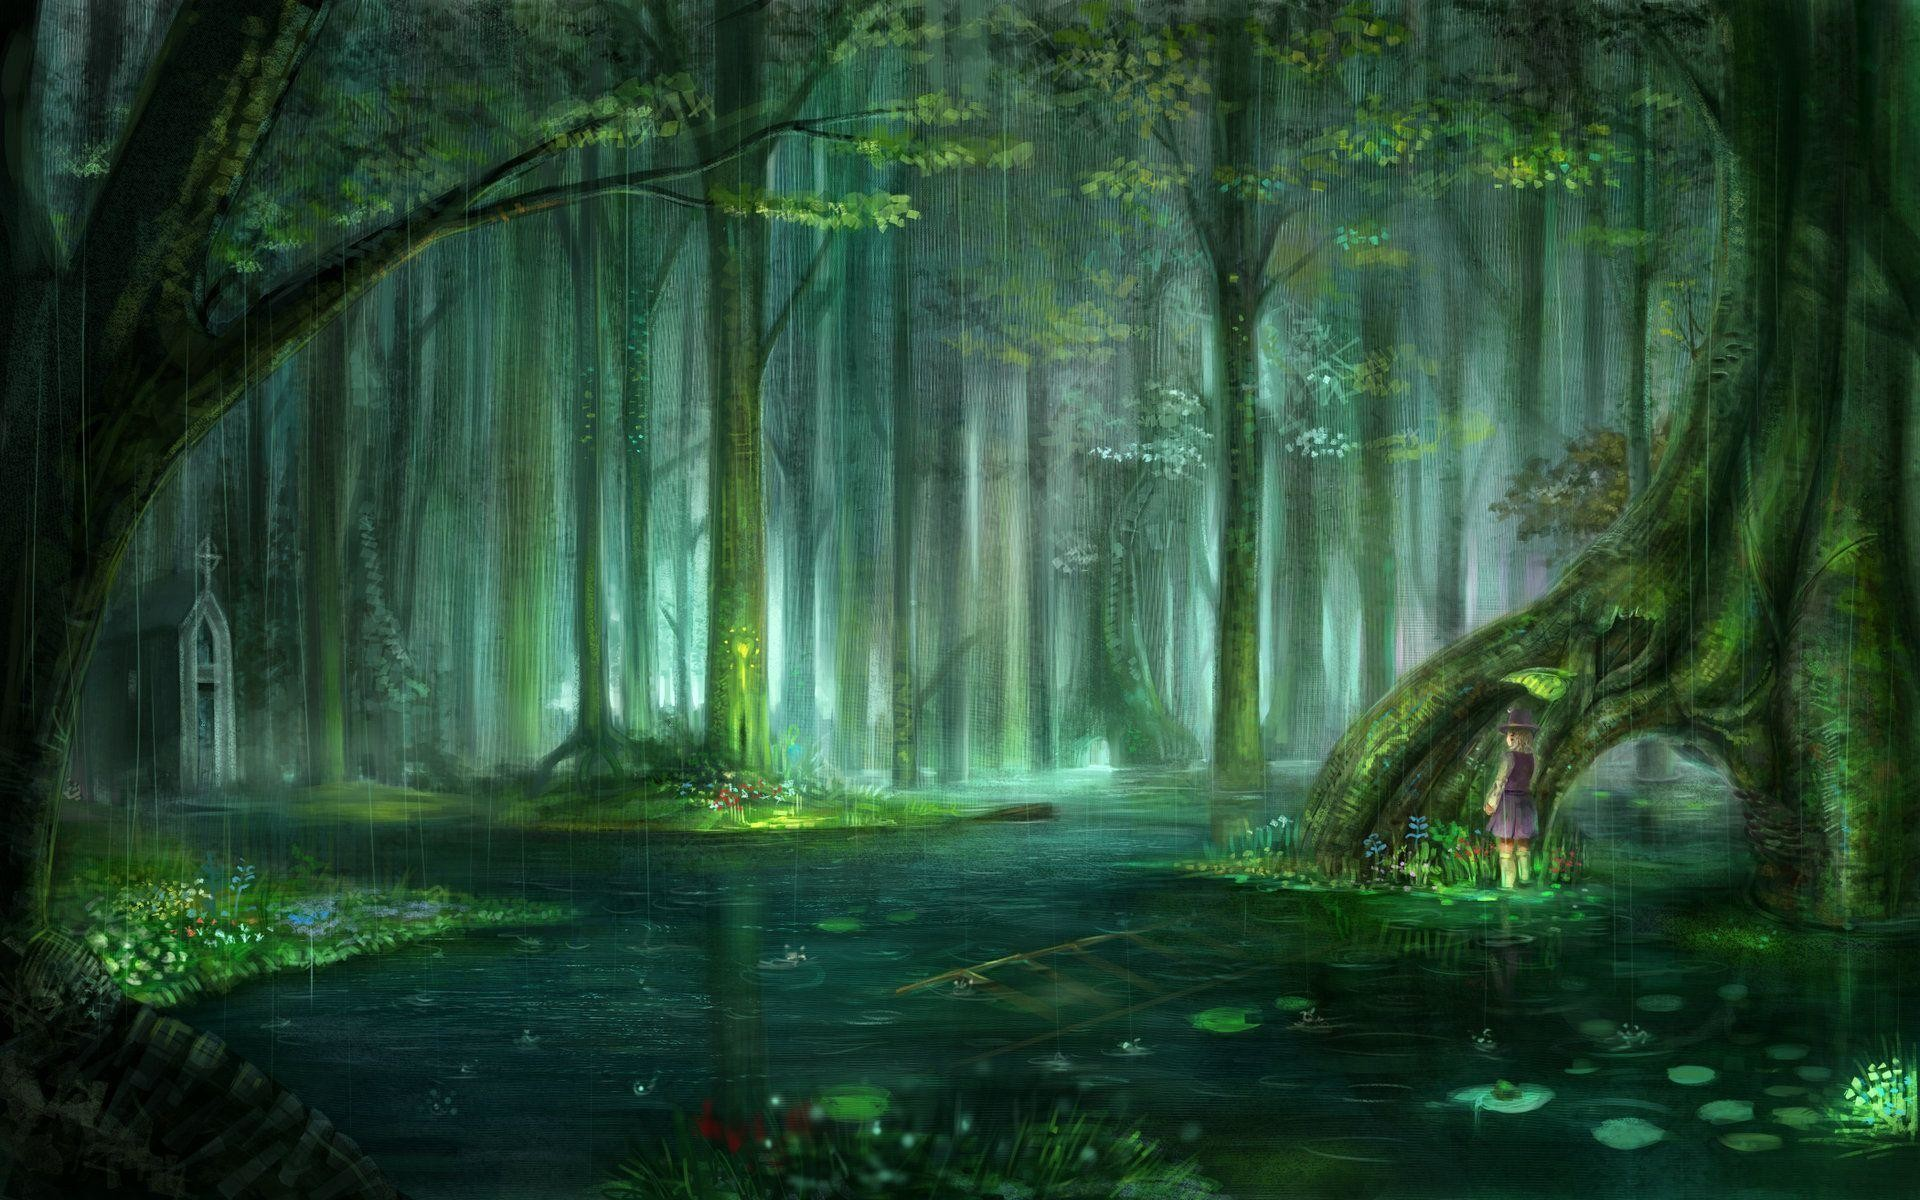 1920x1200 Wallpapers For Enchanted Forest Background Tumblr